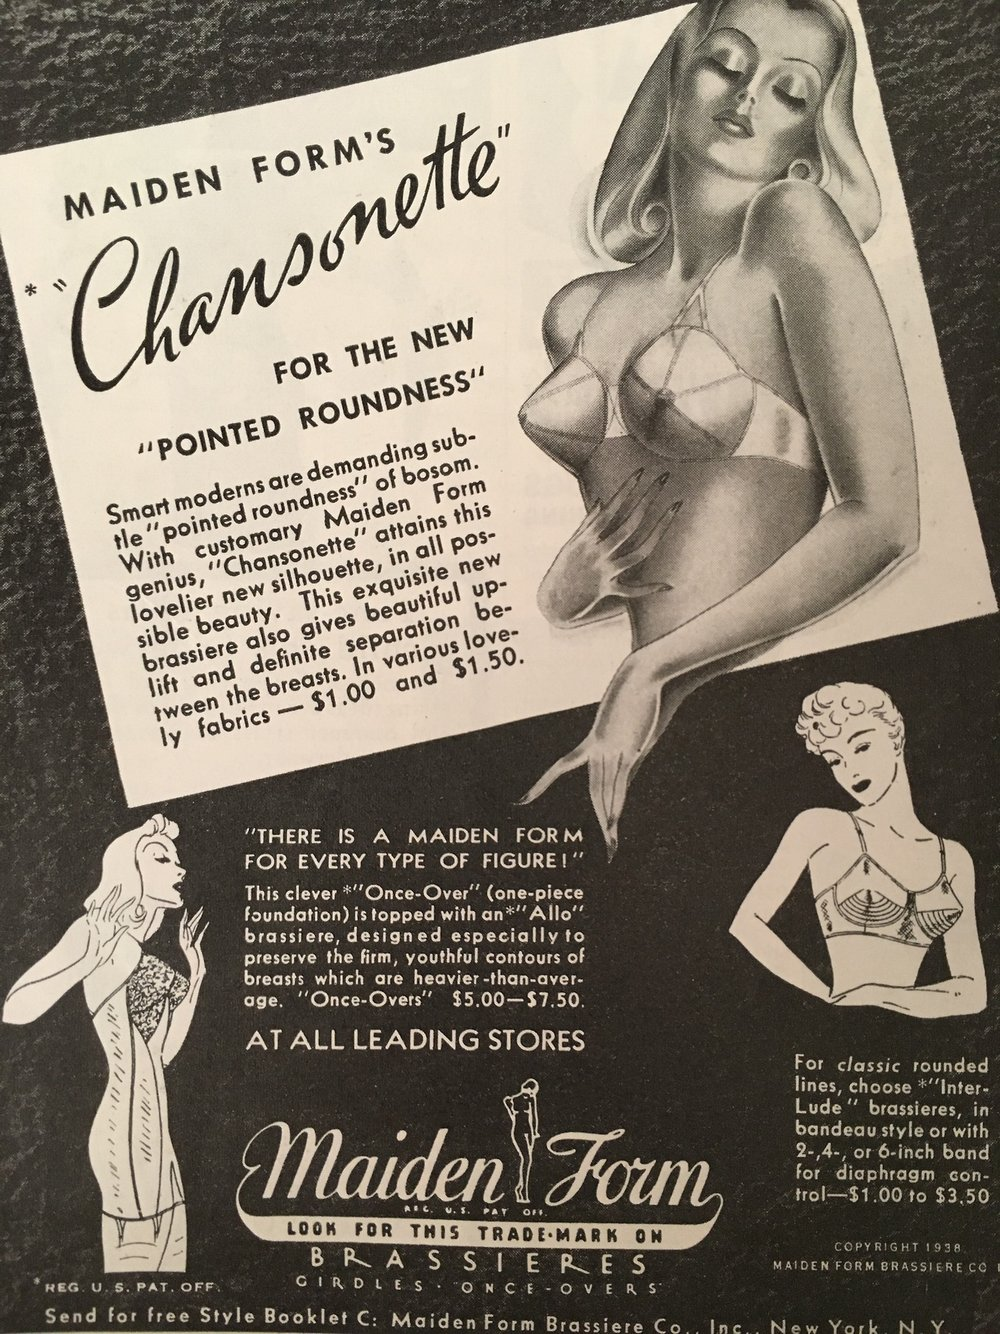 "Maidenform Chansonette bra.   For the new ""pointed roundness""    Woman's Home Companion. May 1938."